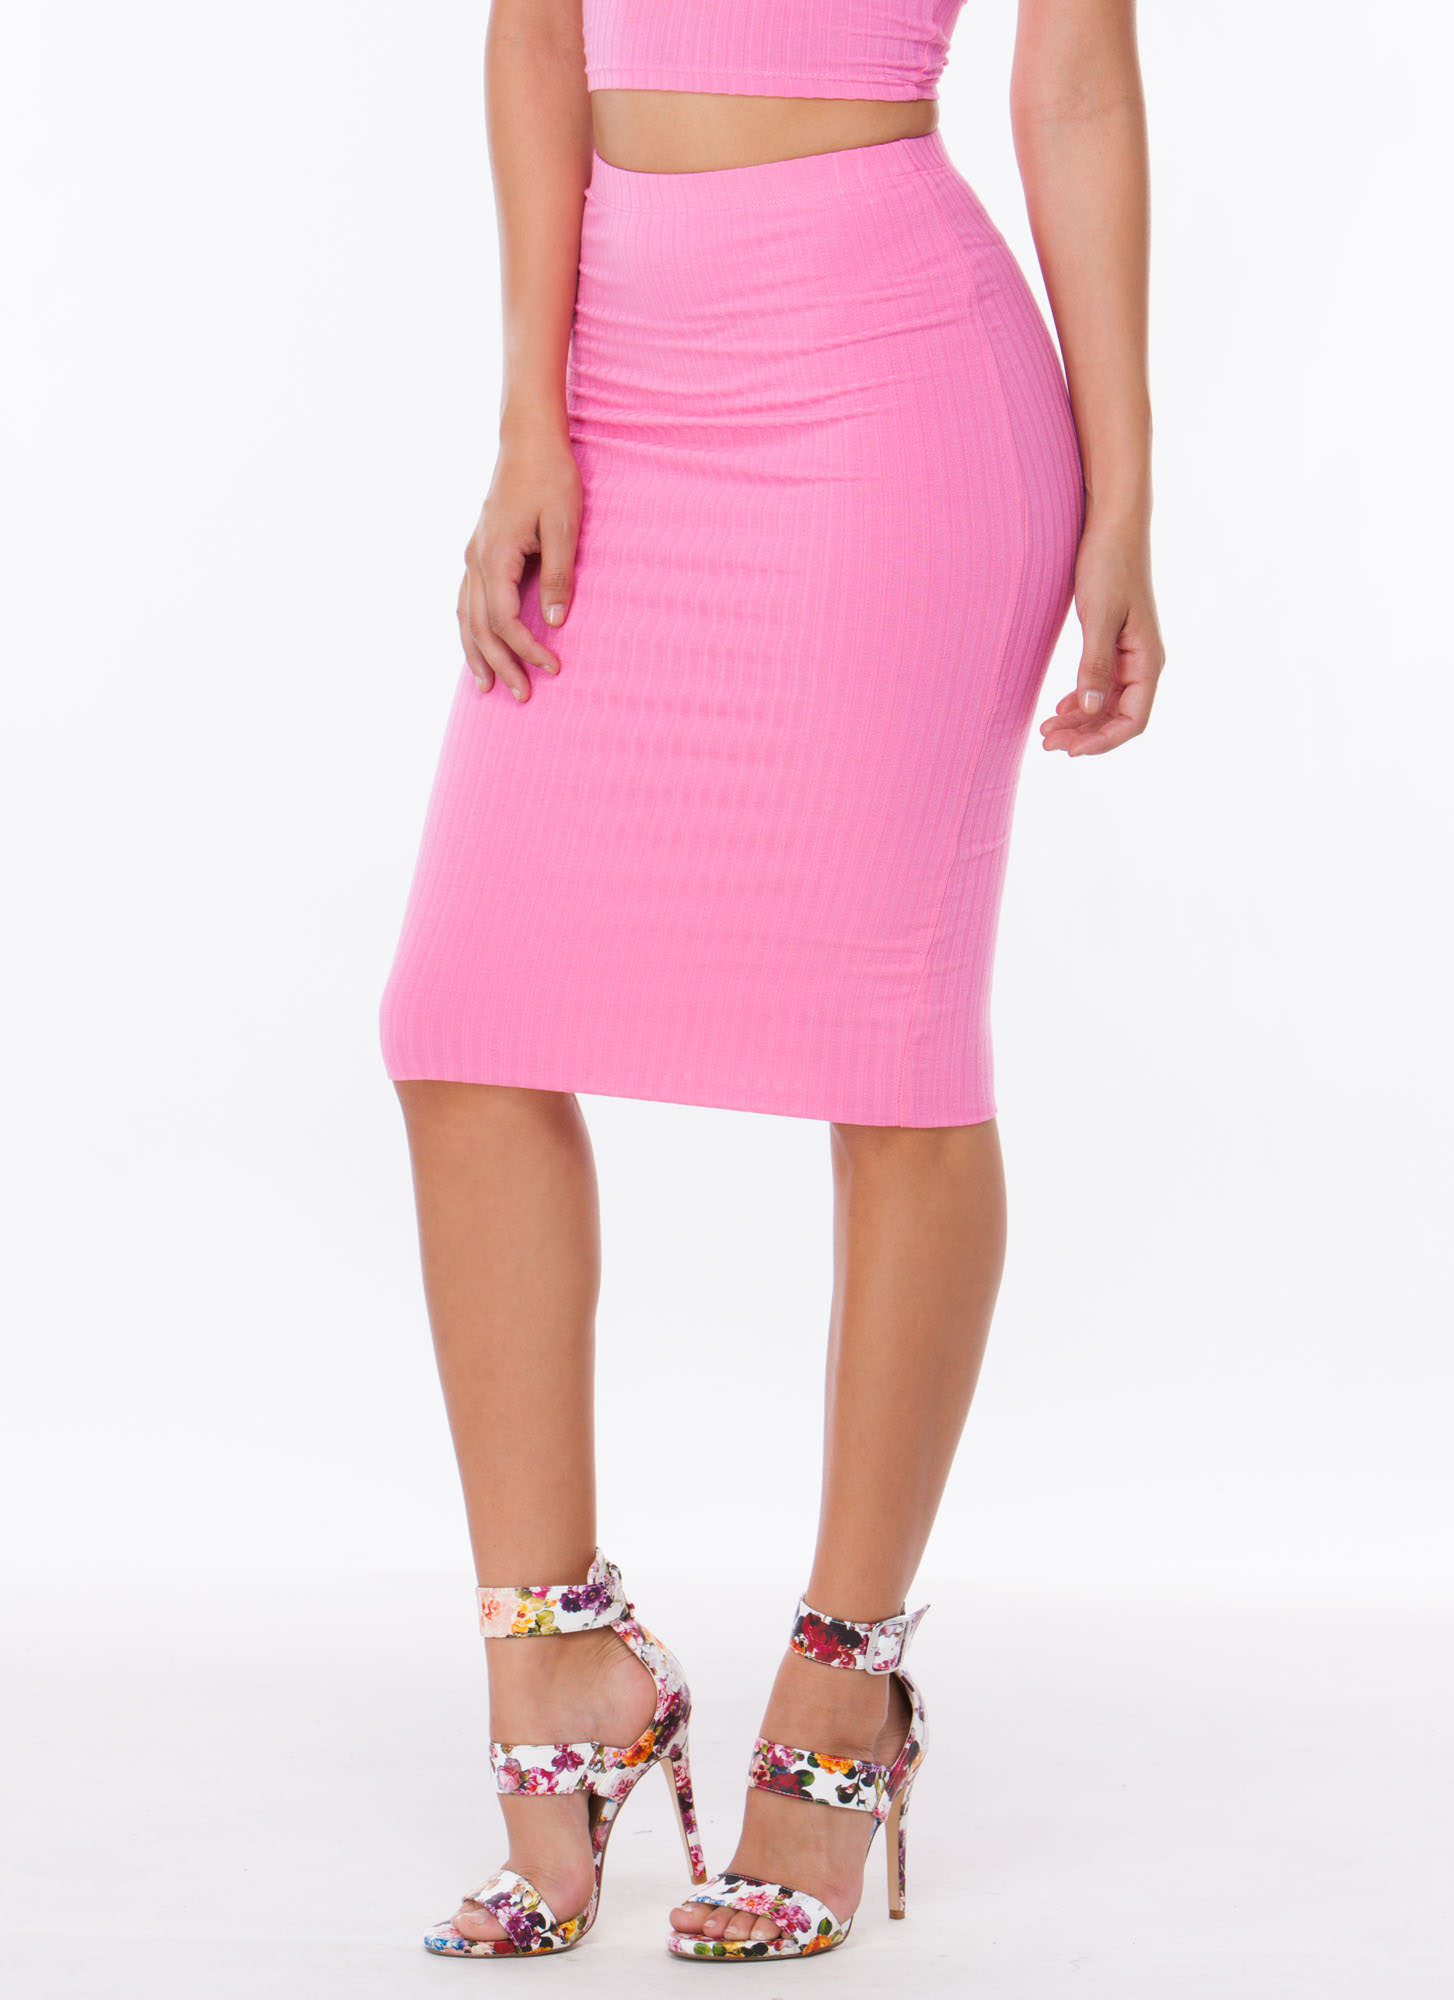 Bubblegum pink pencil skirt